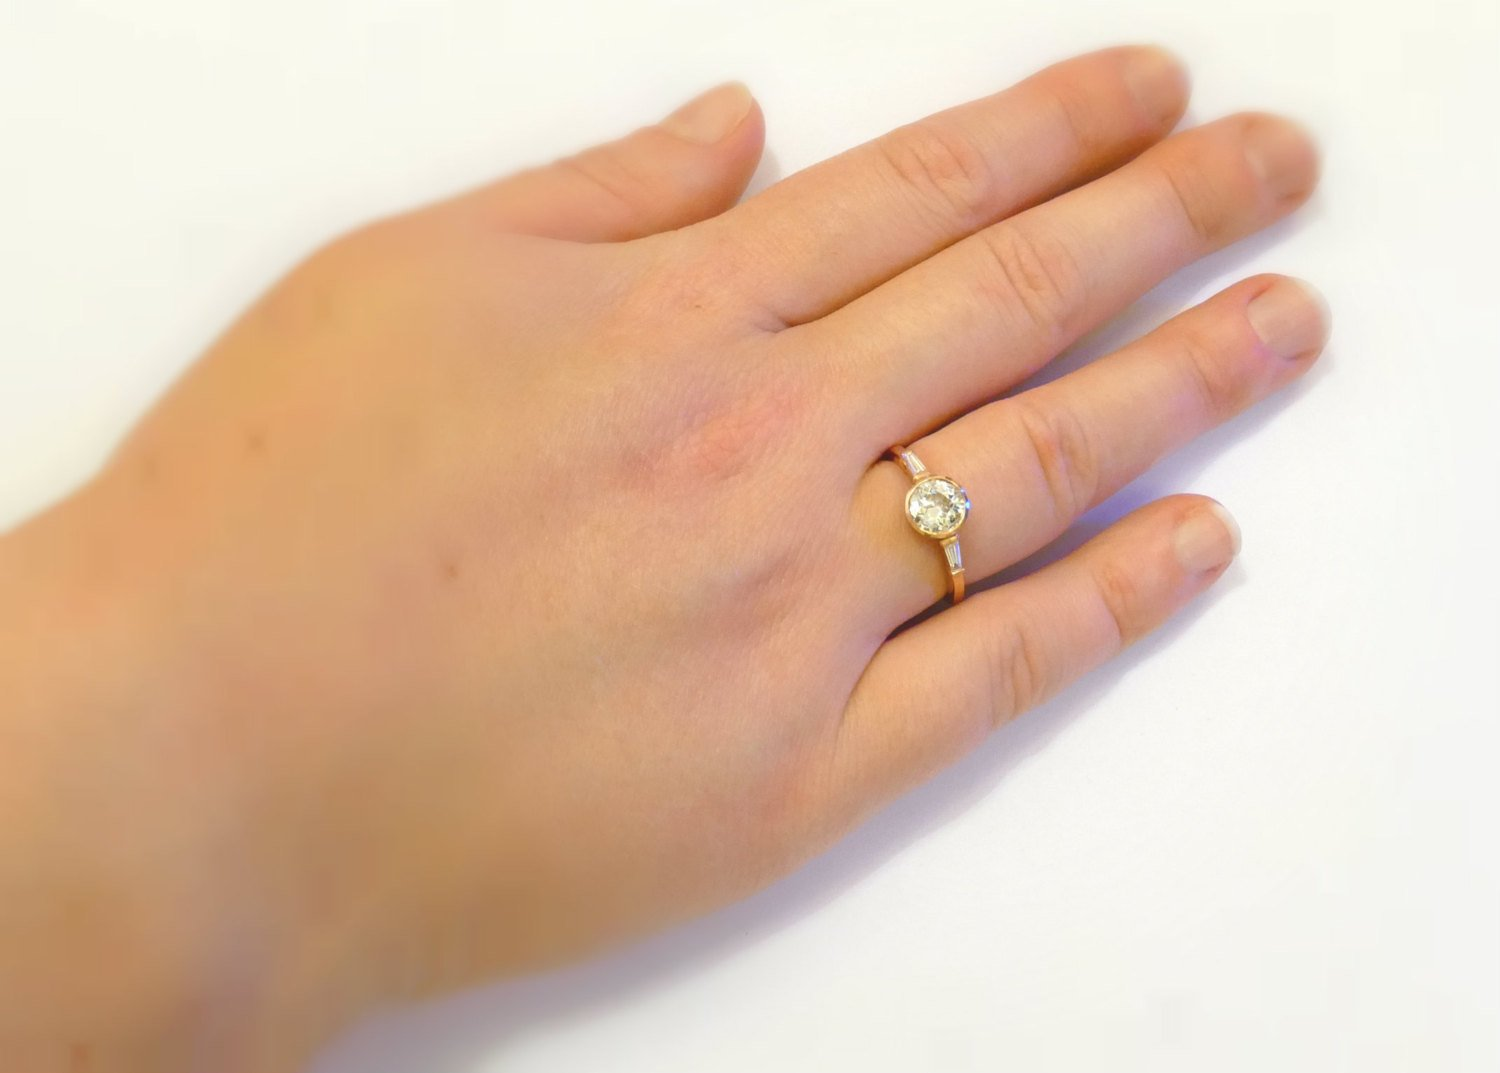 Rose Gold 1 Carat Enement Rings | 1 Carat Diamond Solitaire Engagement Ring Handmade In Rose Gold With